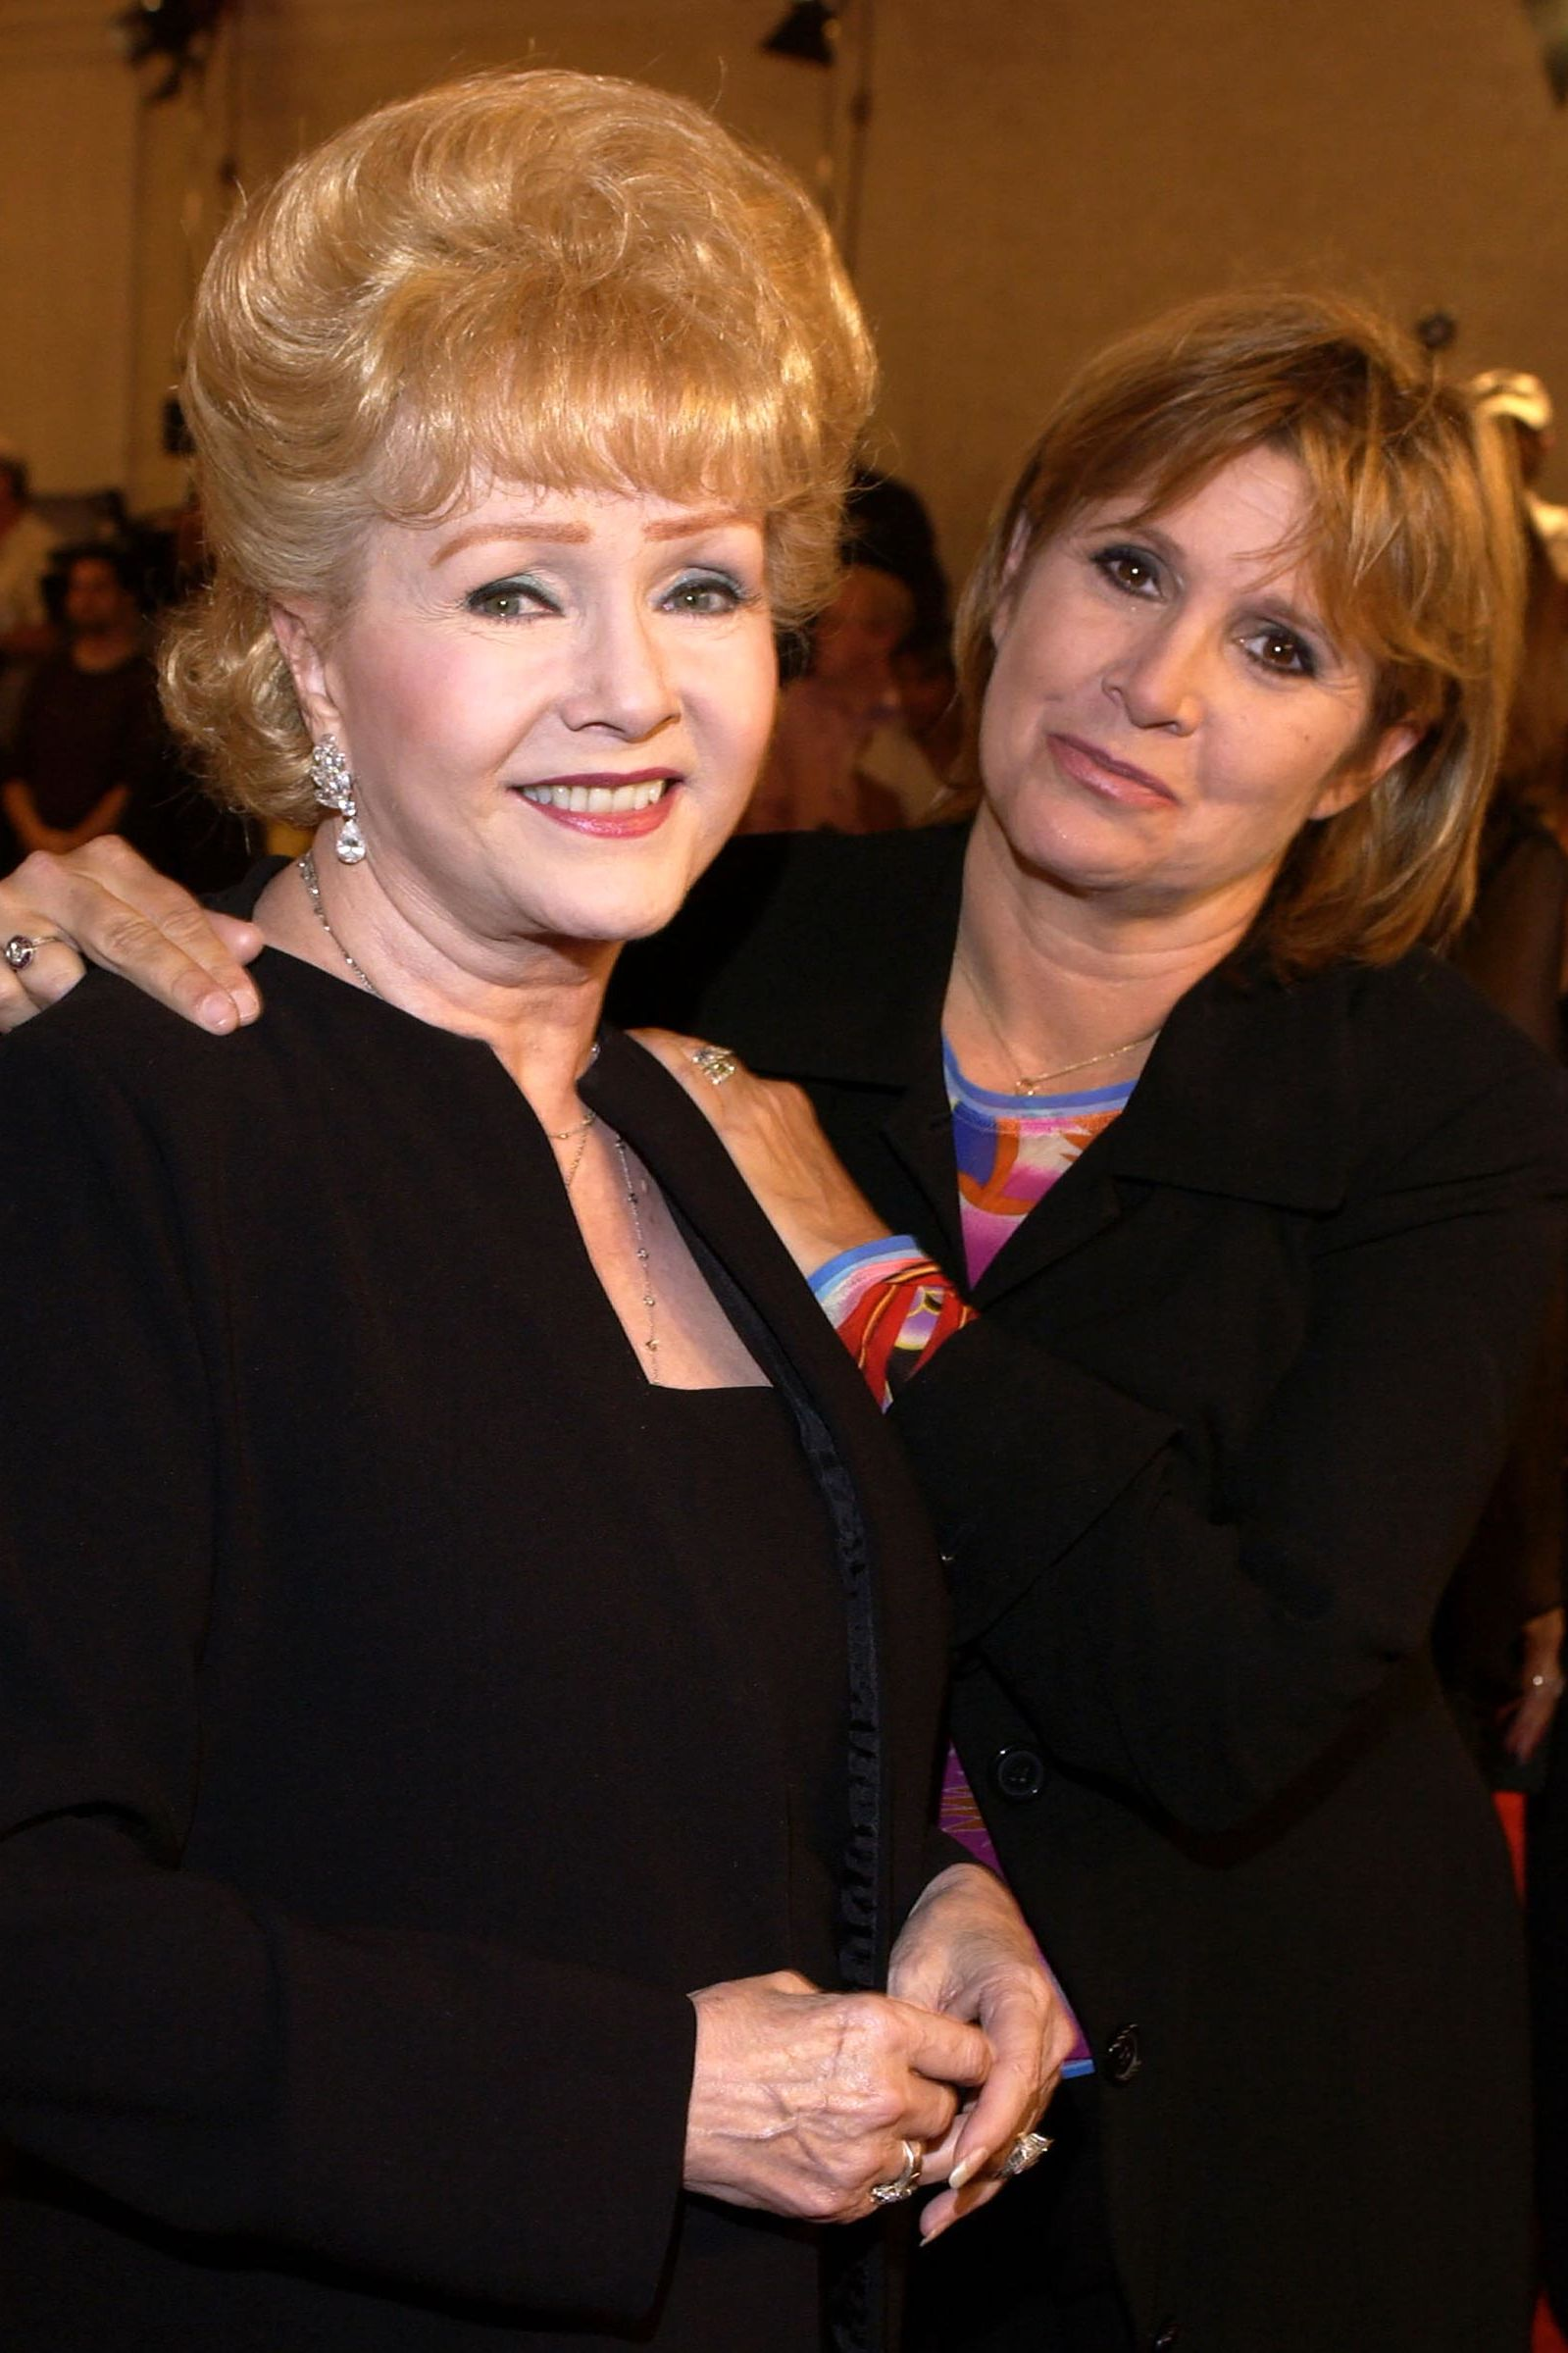 Carrie Fisher on mom Debbie Reynolds in 1987 interview: 'She was fabulous'